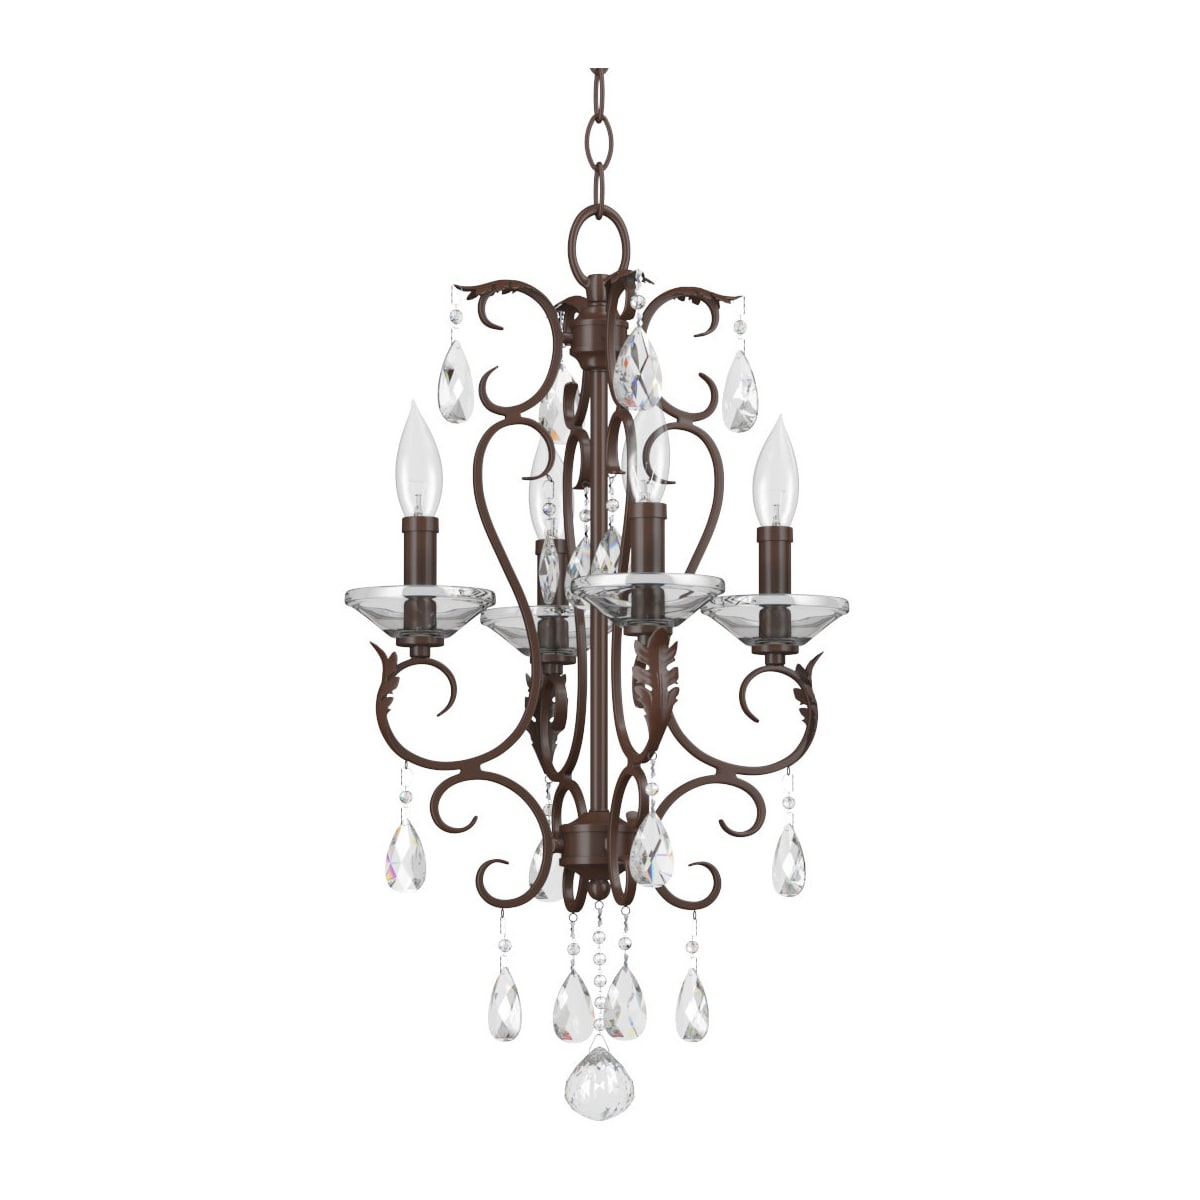 Miseno Gilded Bronze Chandelier - a gorgeous romantic crystal chandelier for decorating a romantic French country room. #frenchcountry #chandelier #gilded